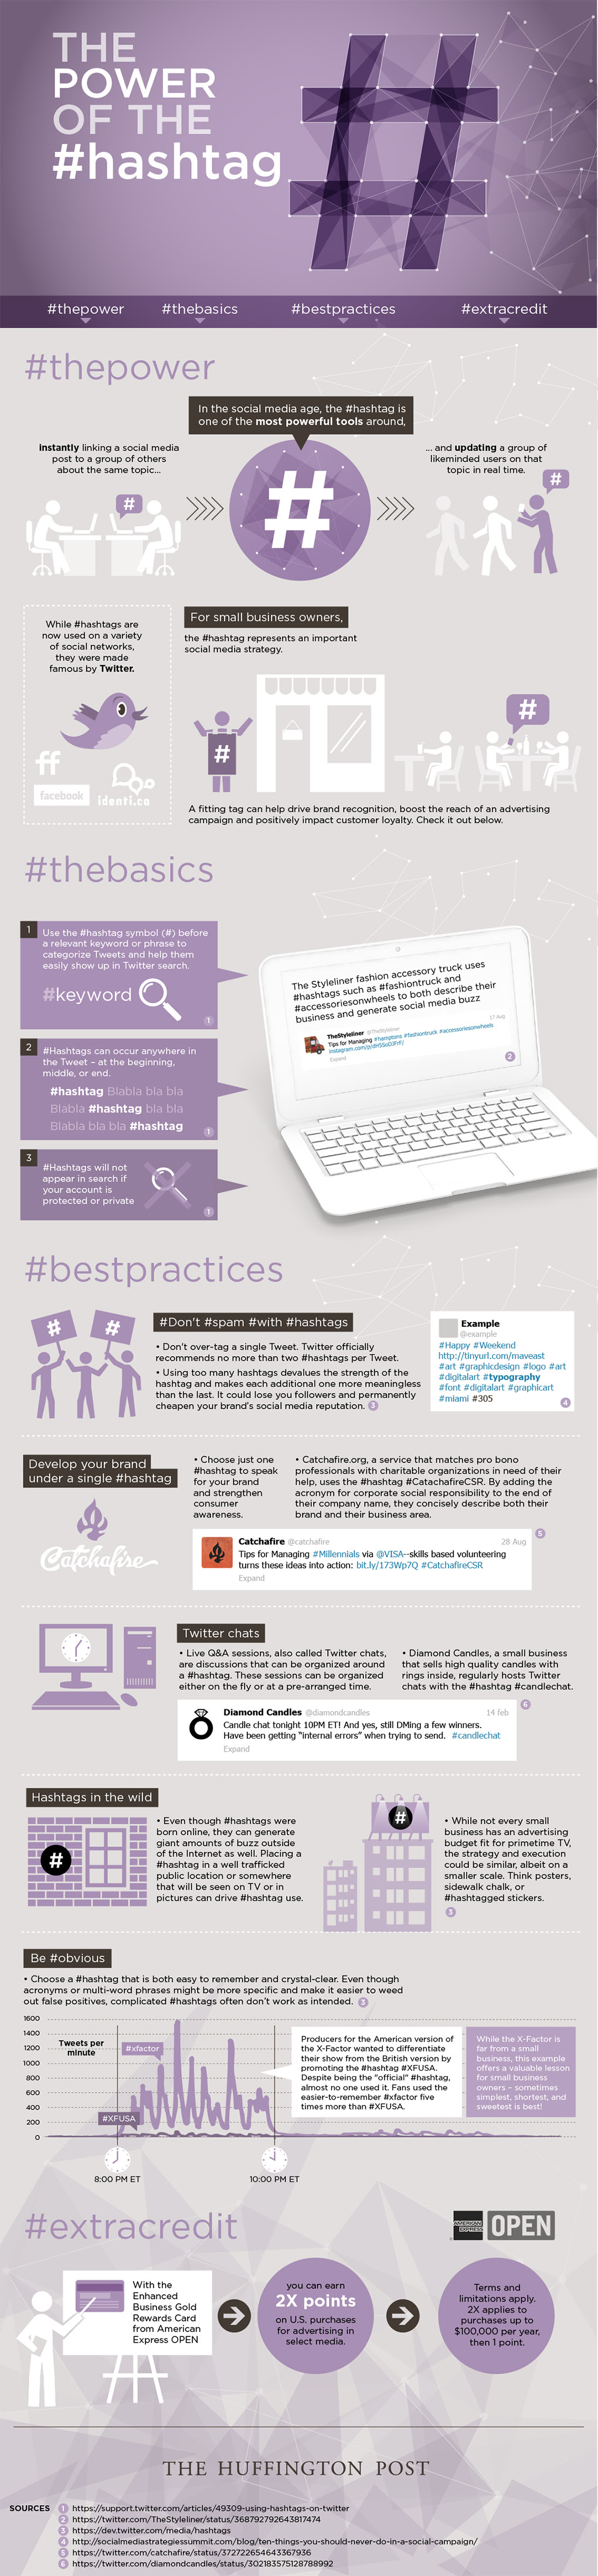 Best Practices For Using Hashtags - Infographic, The Real Power Of The Hashtag - Infographic